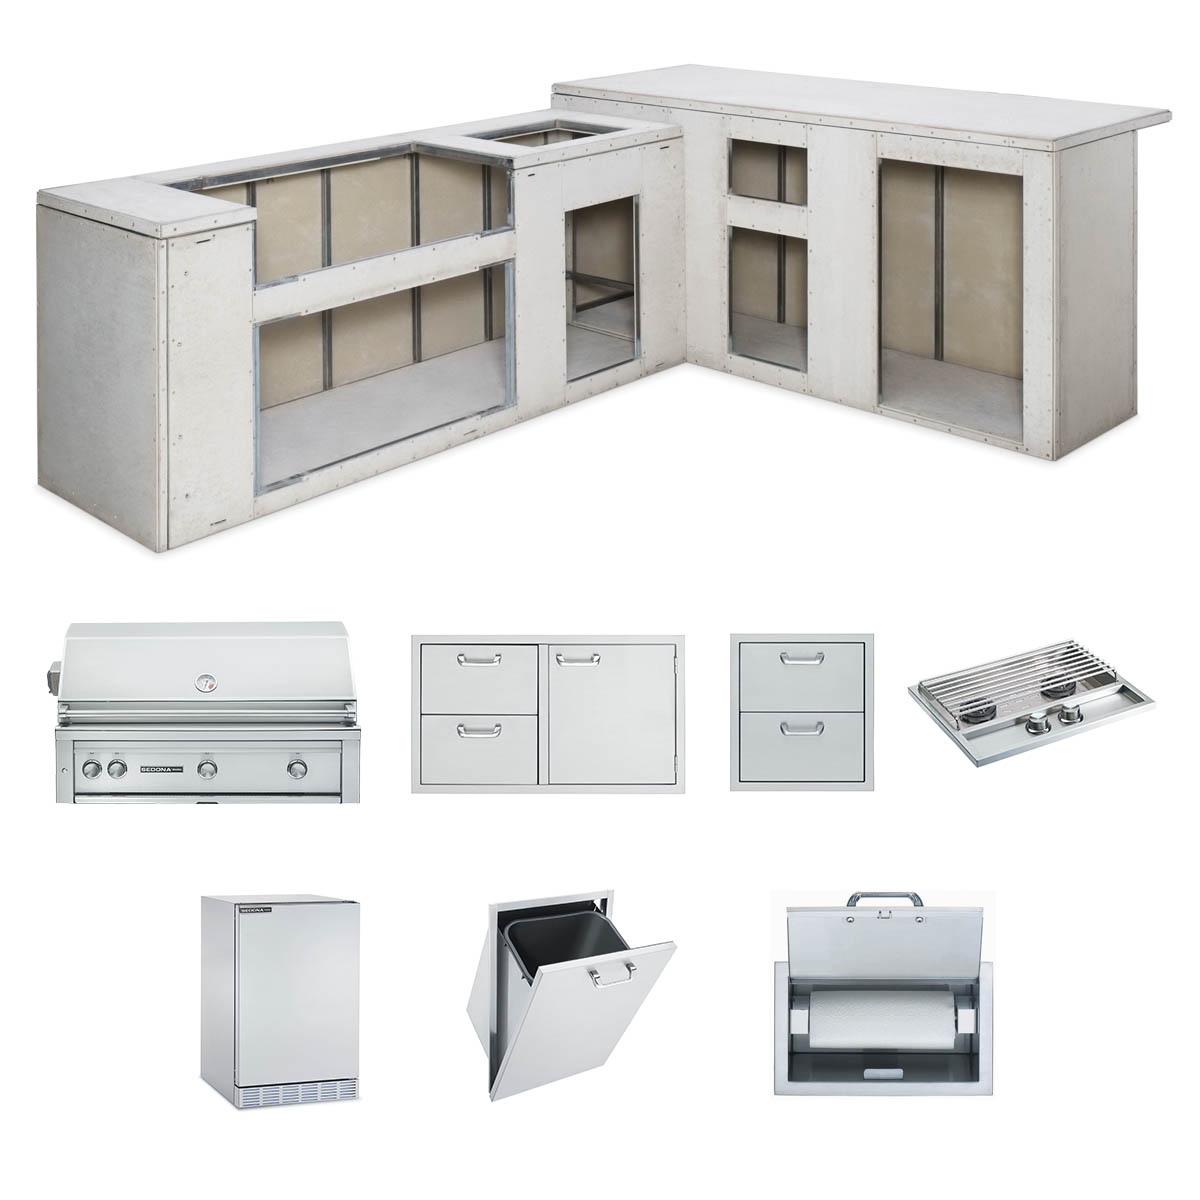 "Lynx RTF Island Package includes: L700 Grill, 42"" Access Doors, Double Side Burner, Refrigerator, Paper Towel Dispenser, Trash Center, Double Drawers"